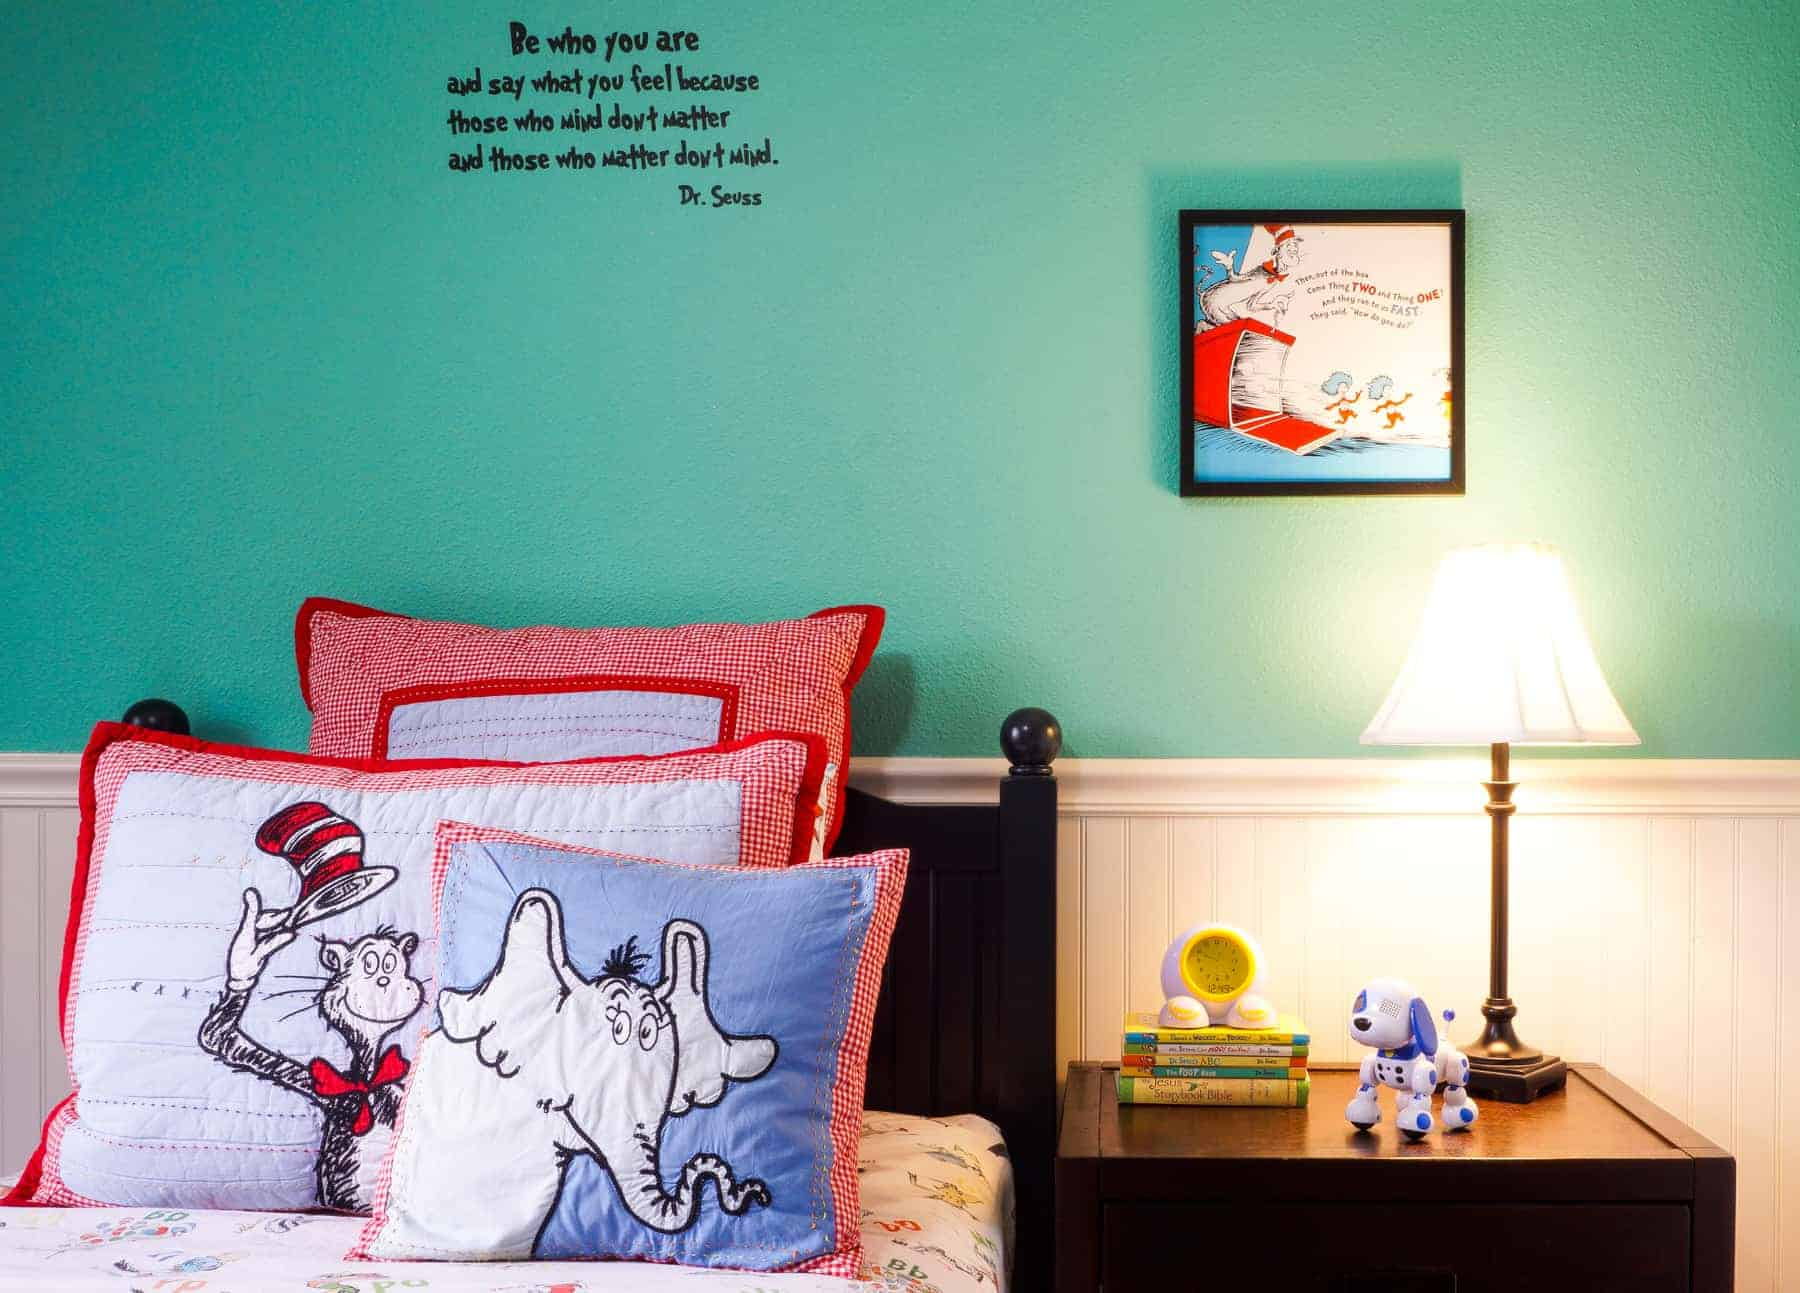 Kids Bedroom Decor Ideas Create A Whimsical Space With Dr Seuss .